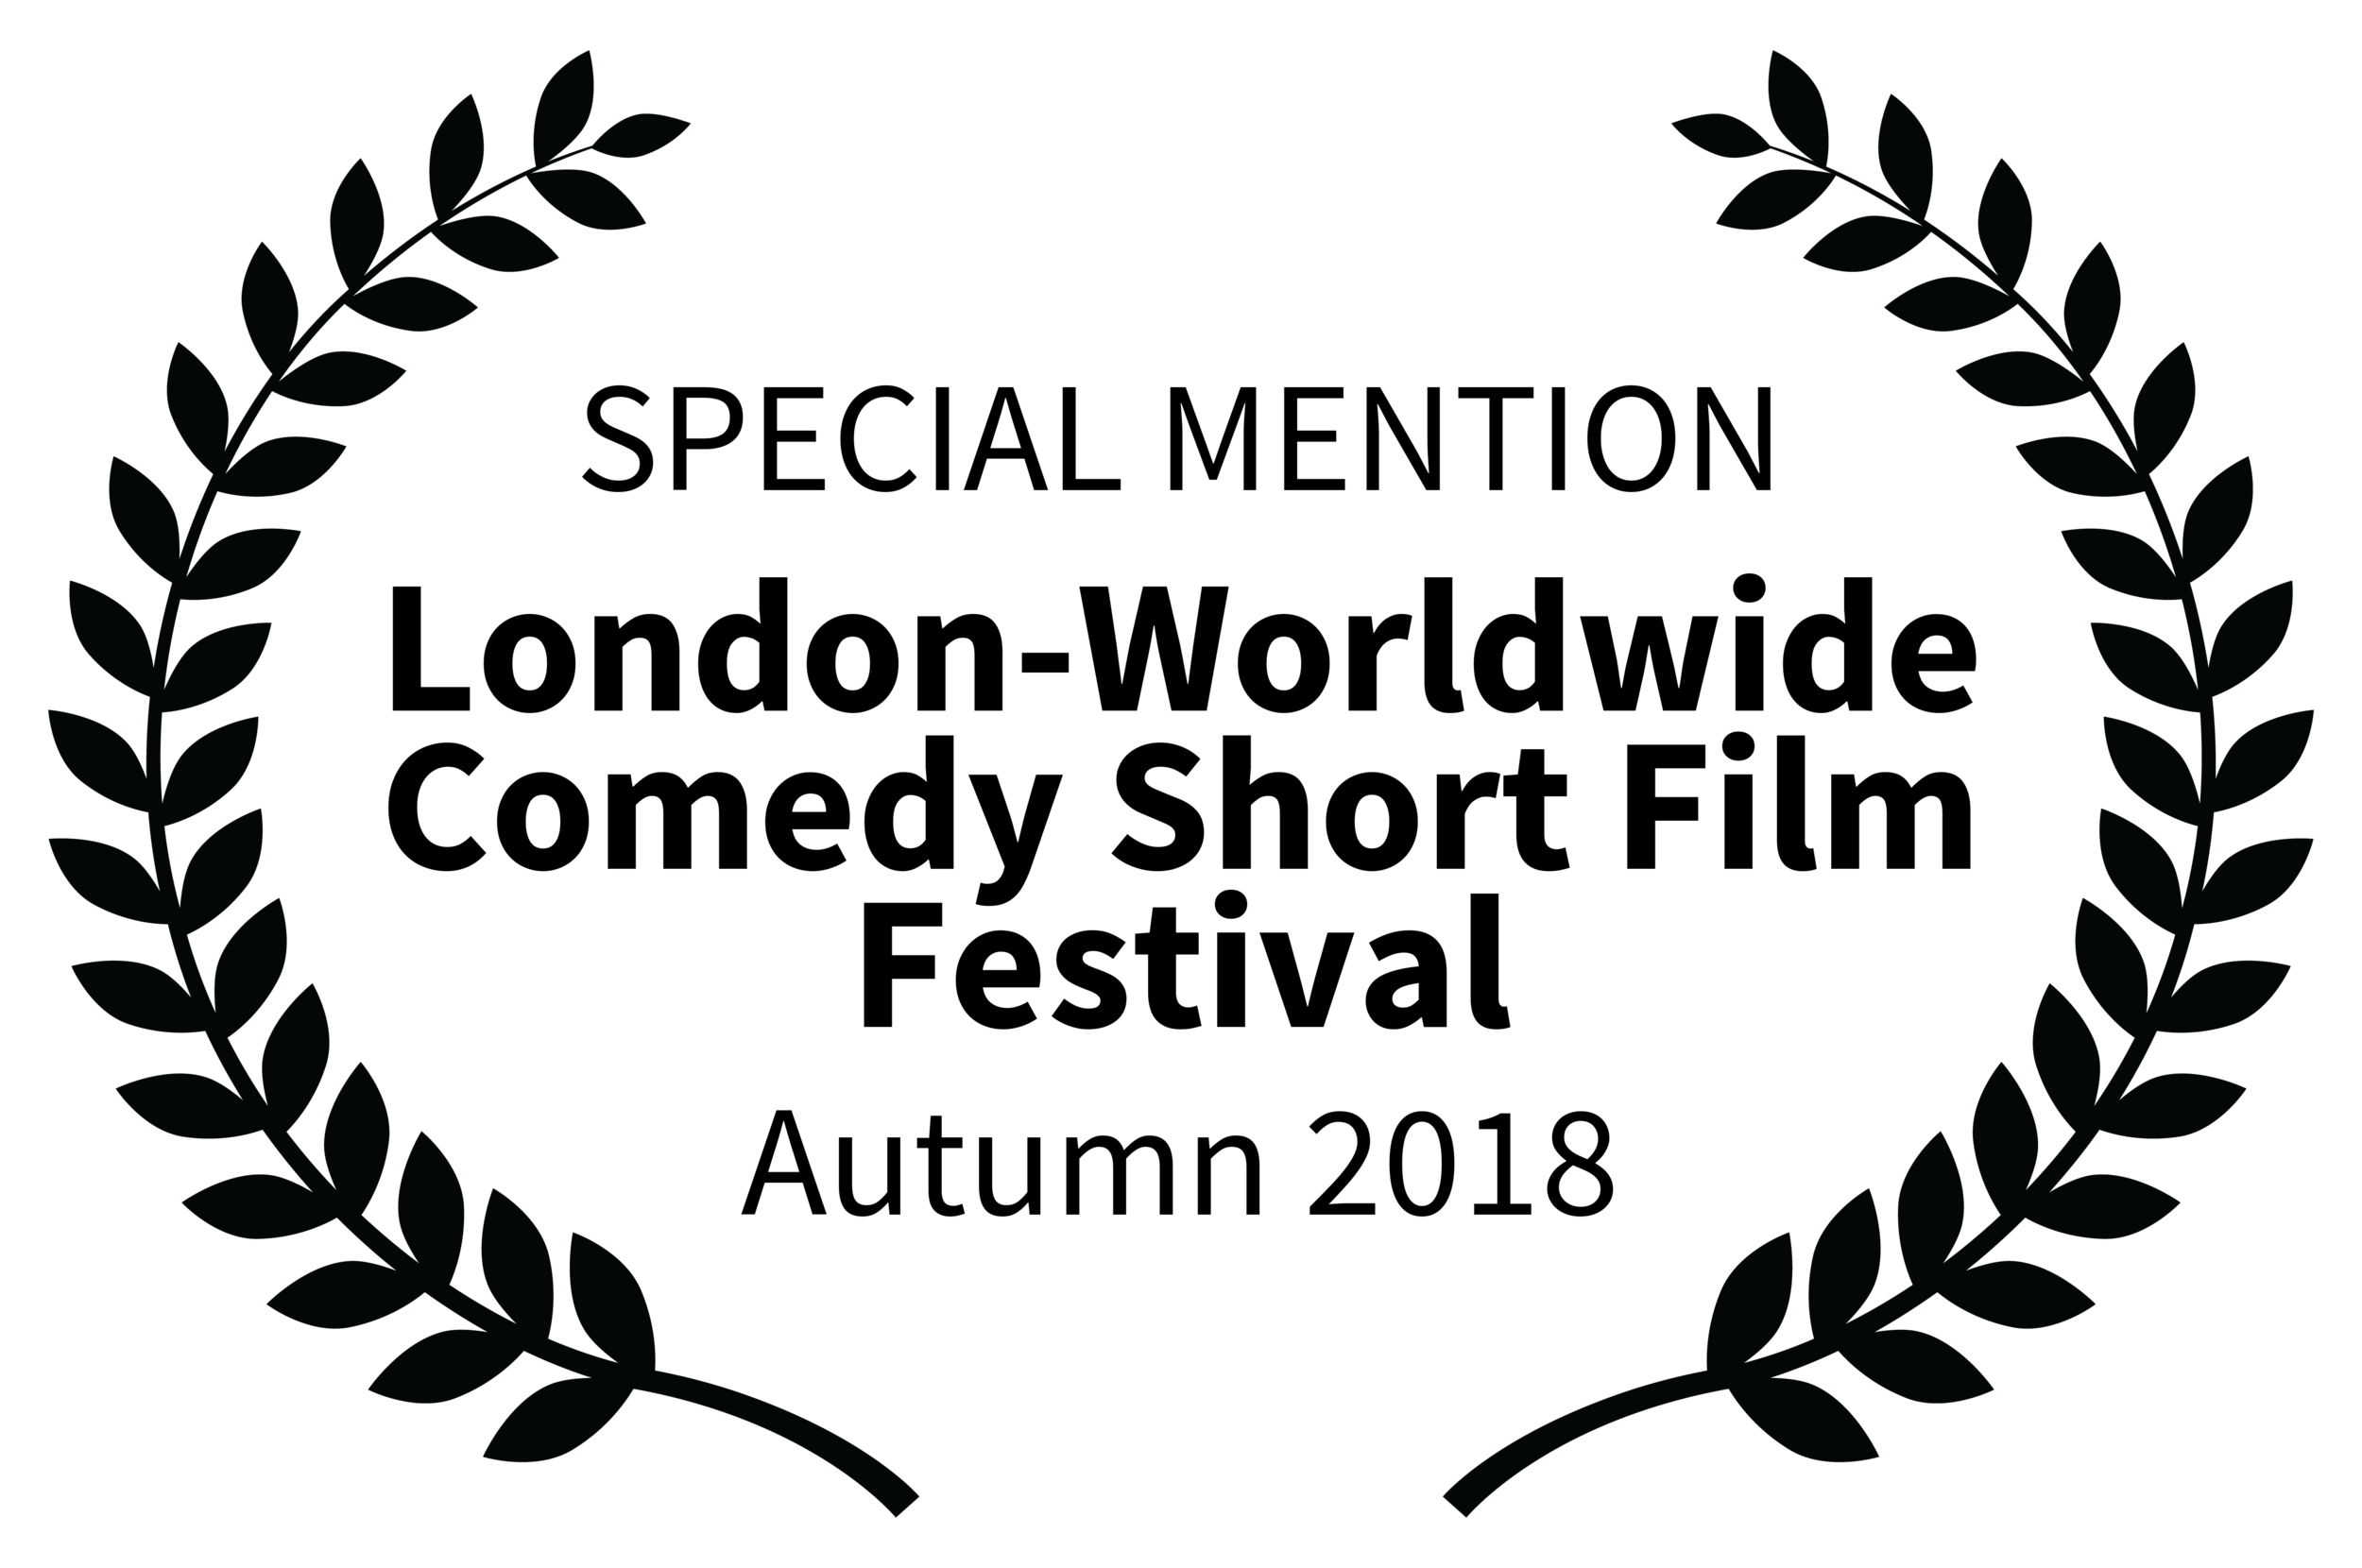 SPECIALMENTION-London-WorldwideComedyShortFilmFestival-Autumn2018.png